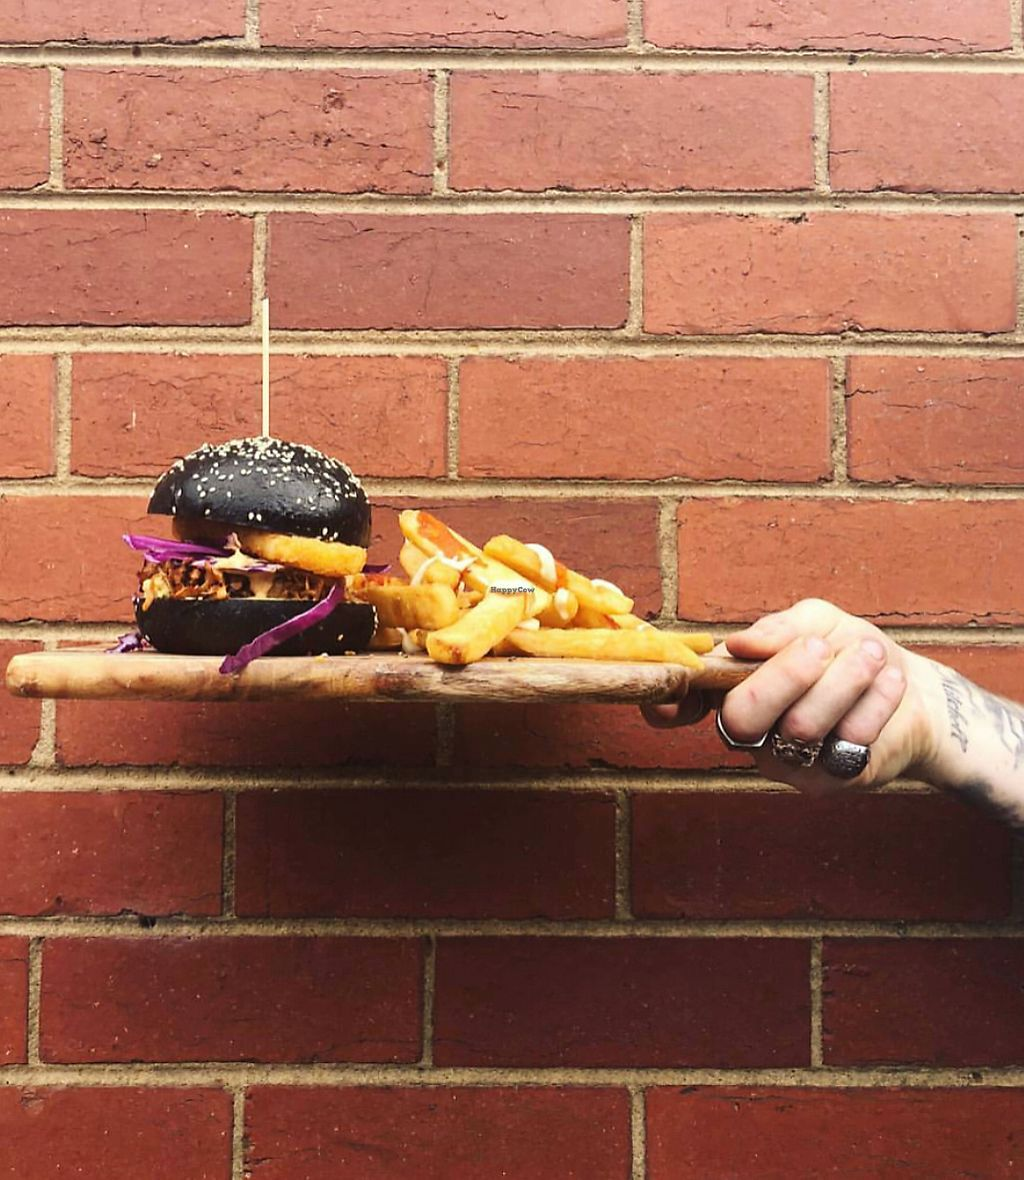 """Photo of The Elizabeth Cafe  by <a href=""""/members/profile/LaurenHarrison"""">LaurenHarrison</a> <br/>Vegan pulled """"pork"""" burger on a charcoal bun <br/> February 12, 2018  - <a href='/contact/abuse/image/111493/358330'>Report</a>"""